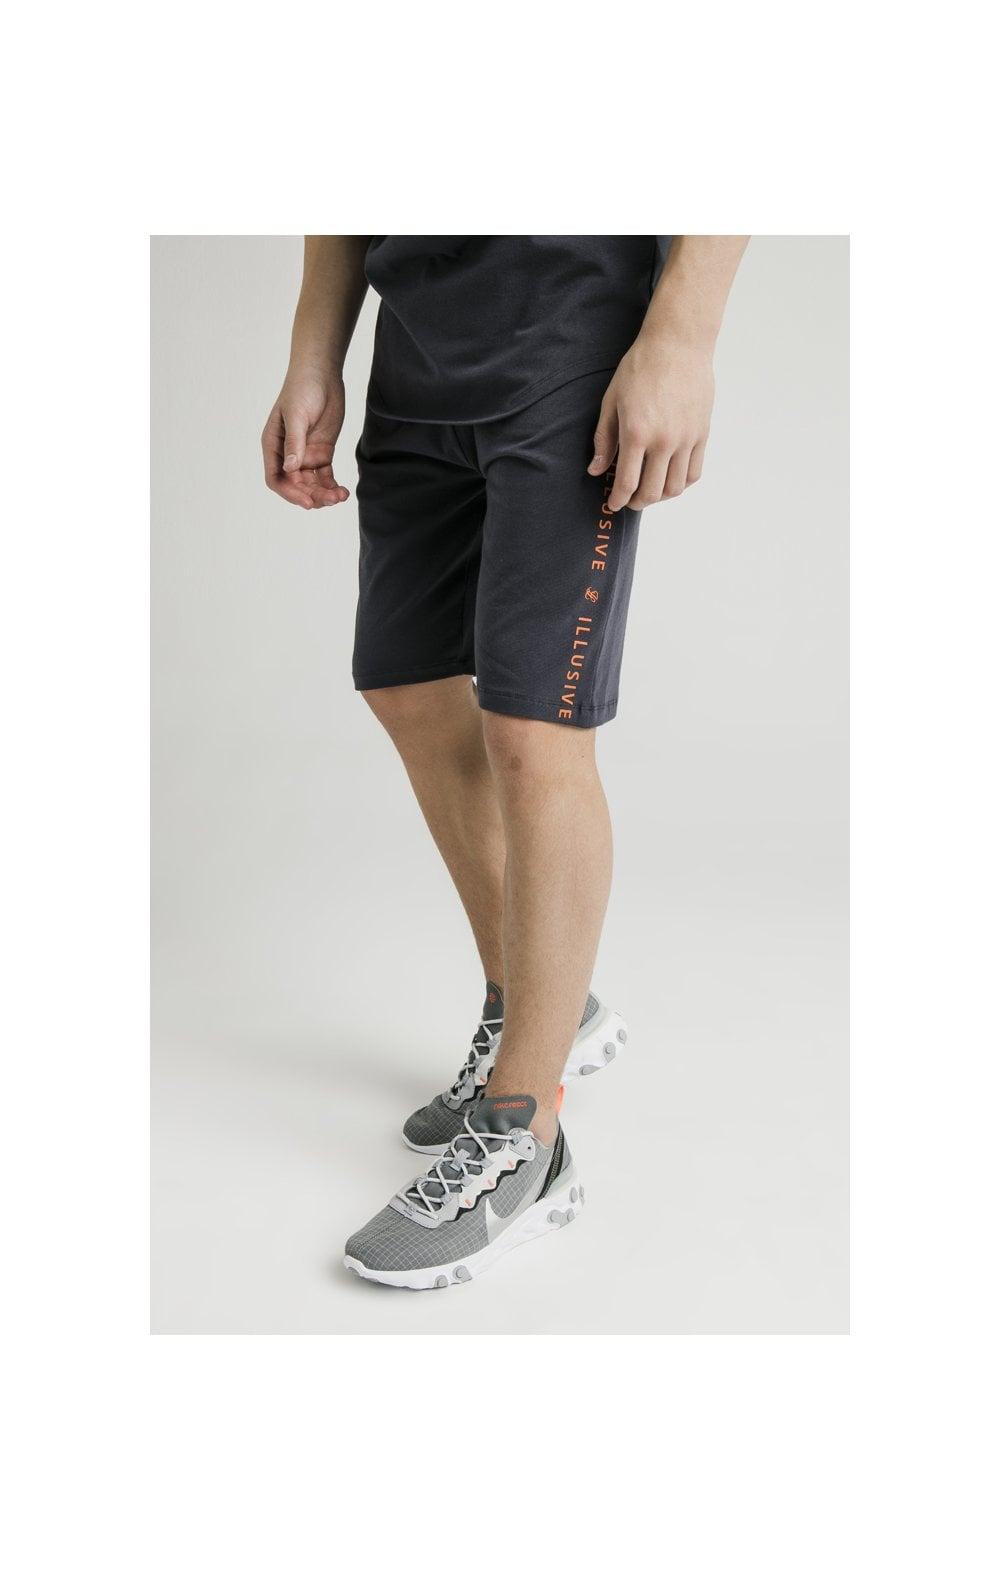 Illusive London Jersey Shorts – Grey & Orange